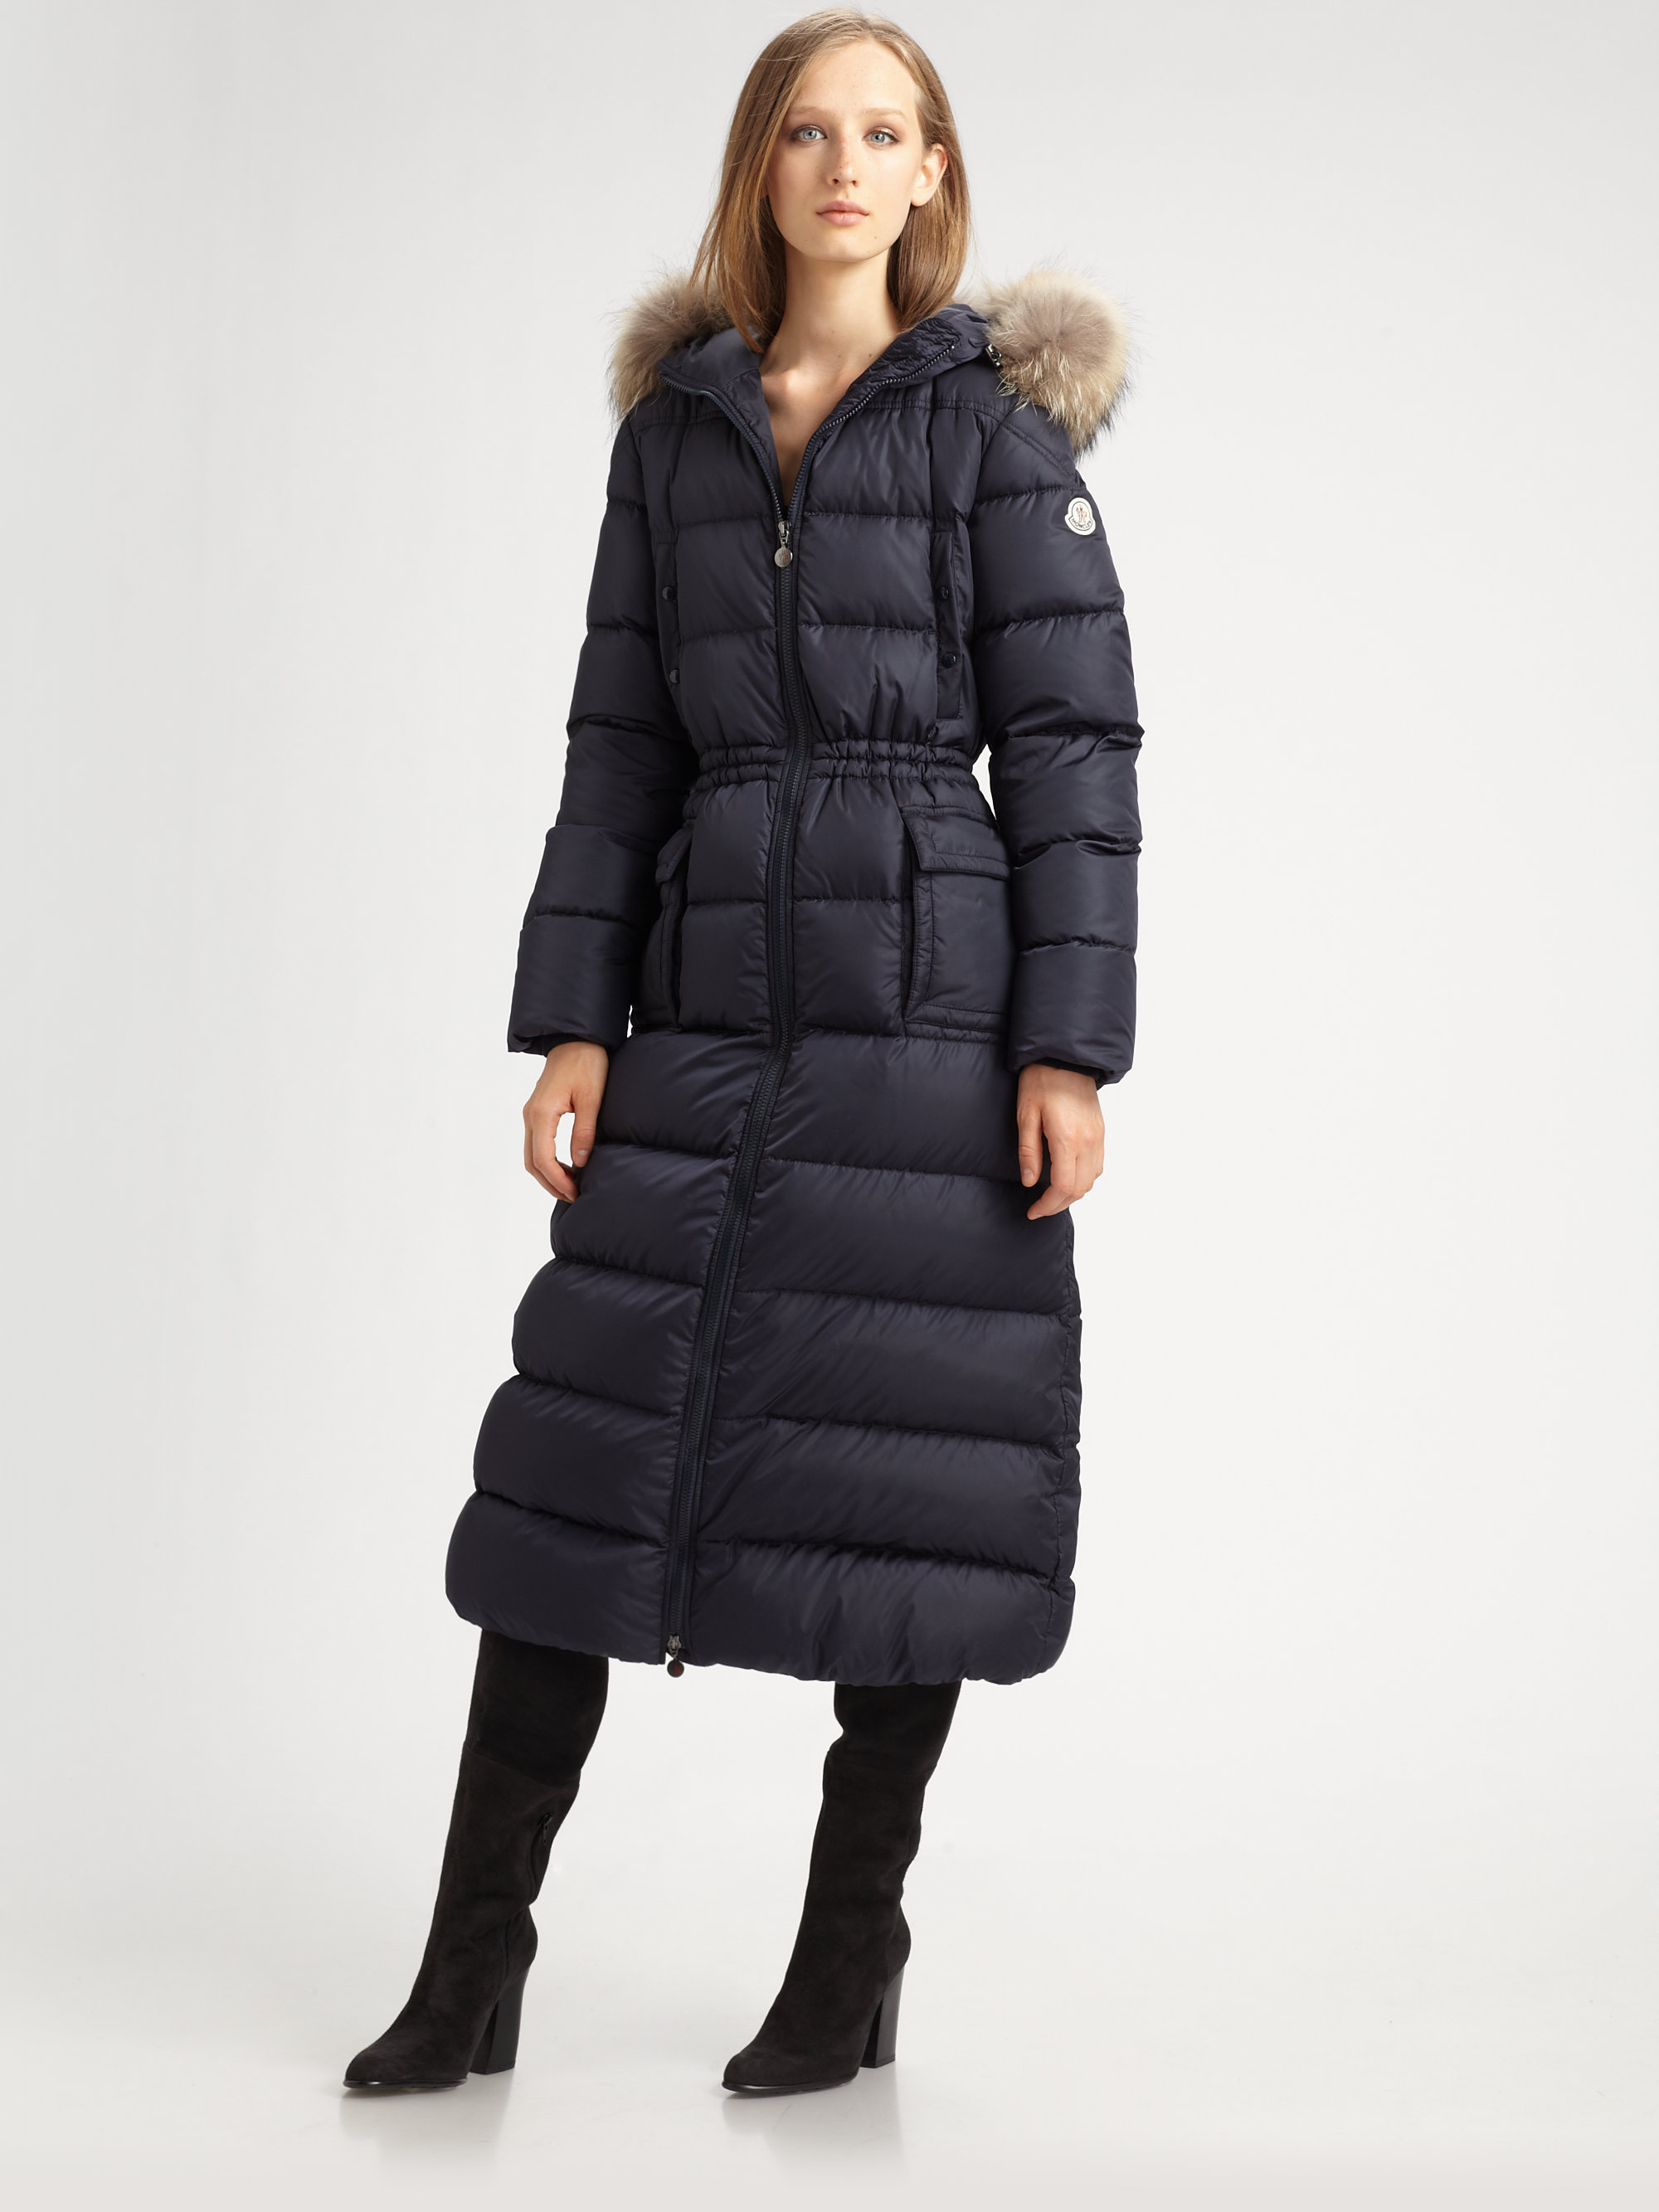 0244175cd Lyst - Moncler Long Furtrimmed Puffer Coat in Black